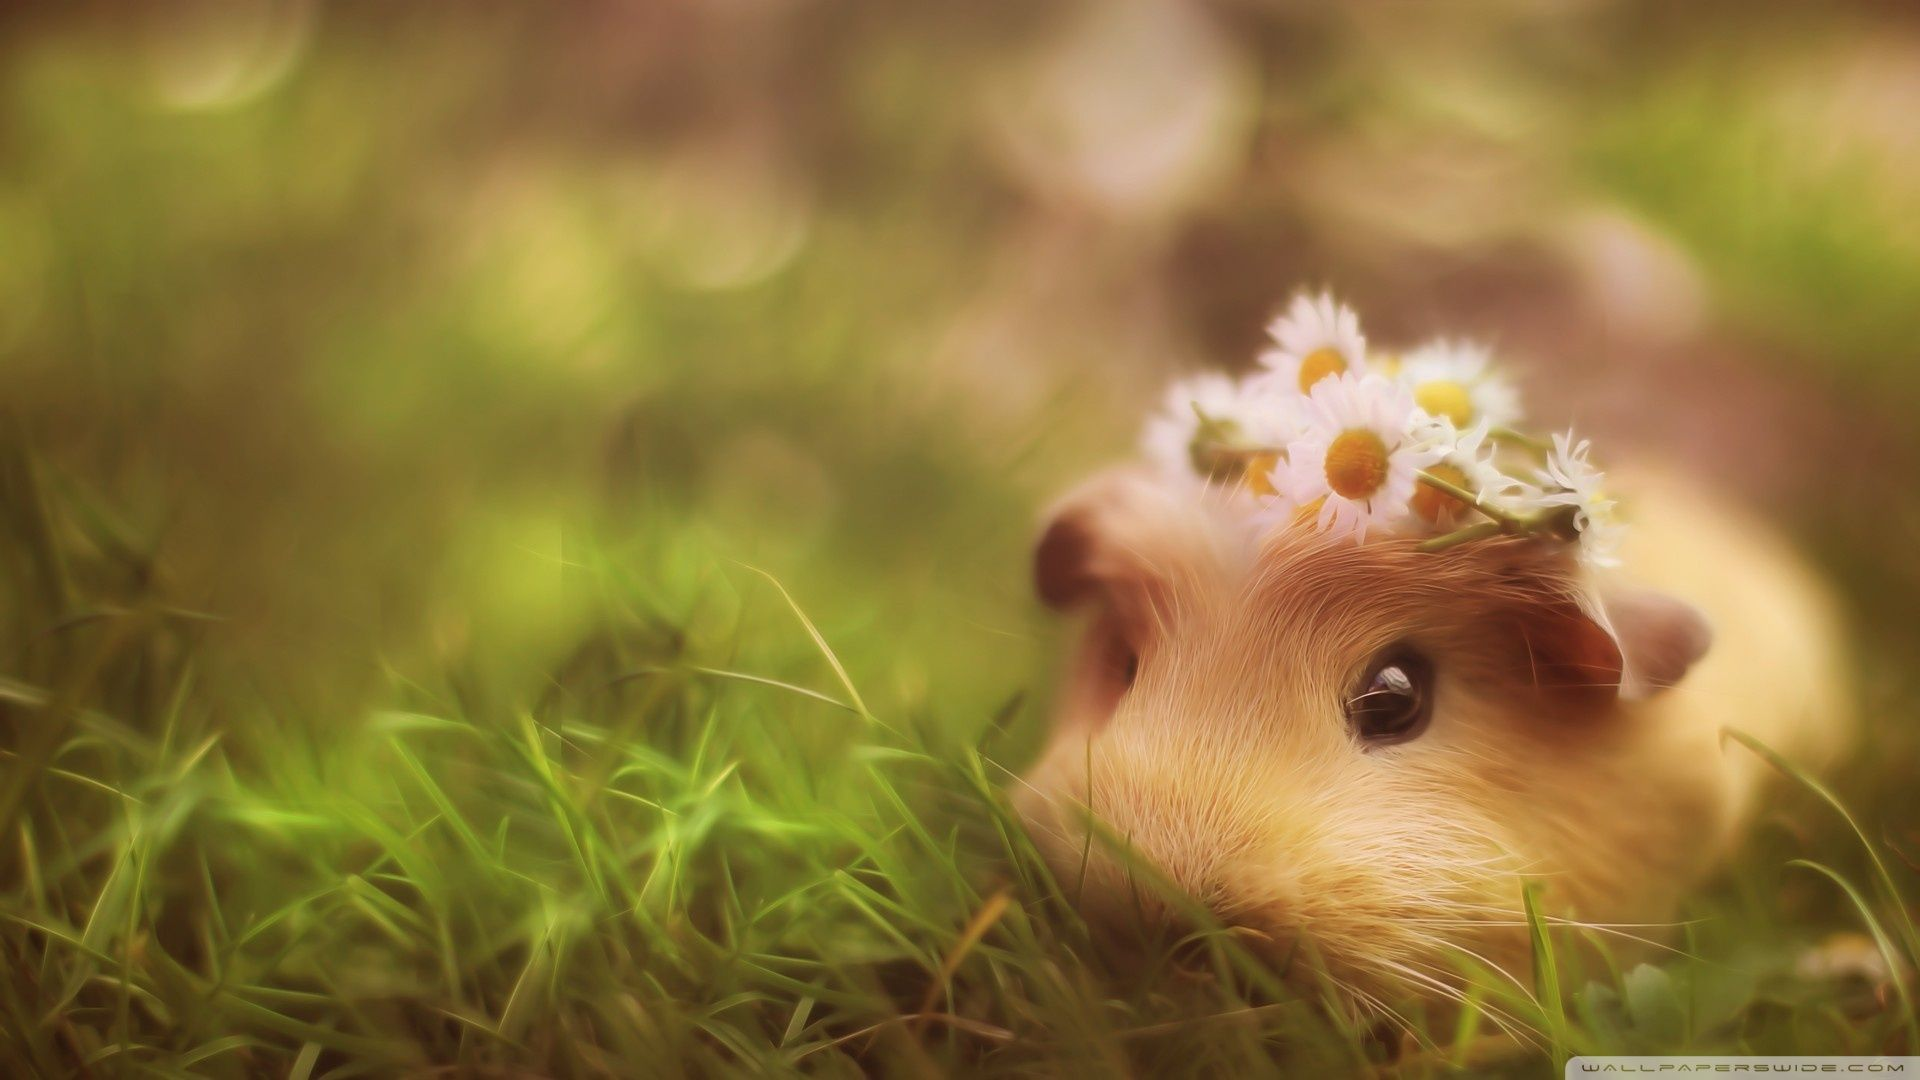 Cute Guinea Pig ❤ 4k Hd Desktop Wallpaper For 4k Ultra - Guinea Pig Wallpaper Phone , HD Wallpaper & Backgrounds